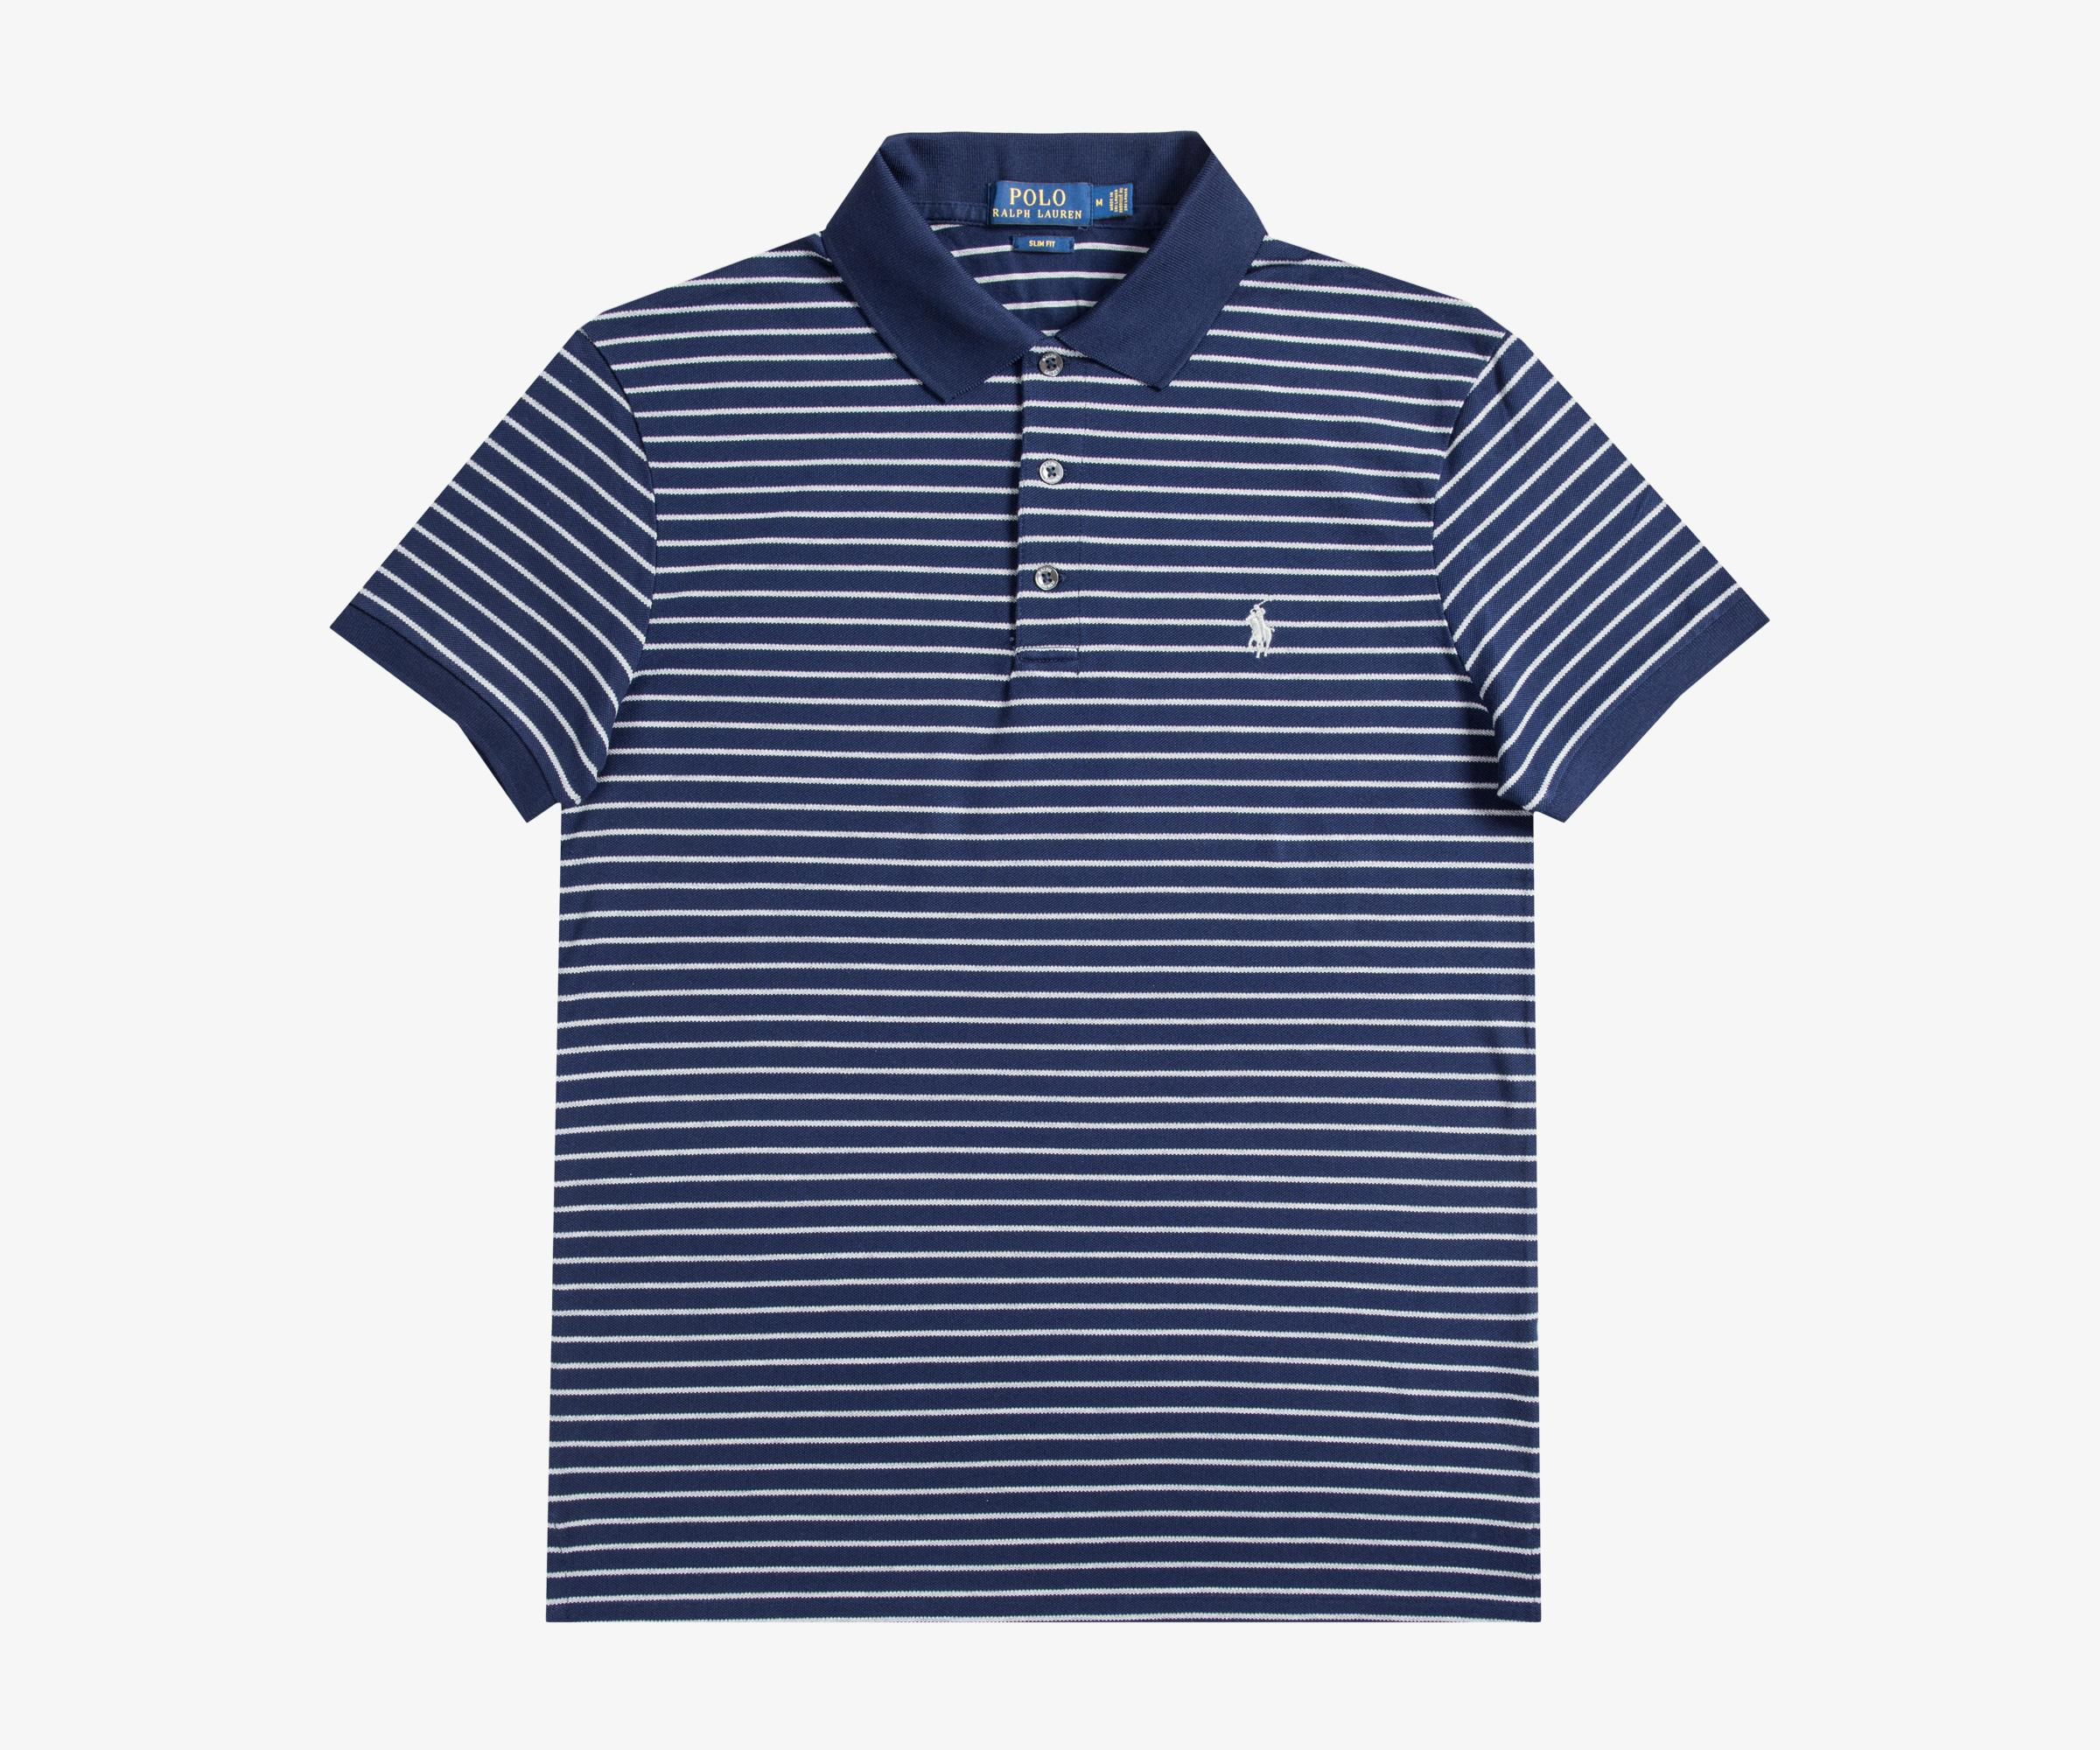 Lyst - Ralph Lauren Slim Fit Striped Polo French Navy andover ... b87b10bd9